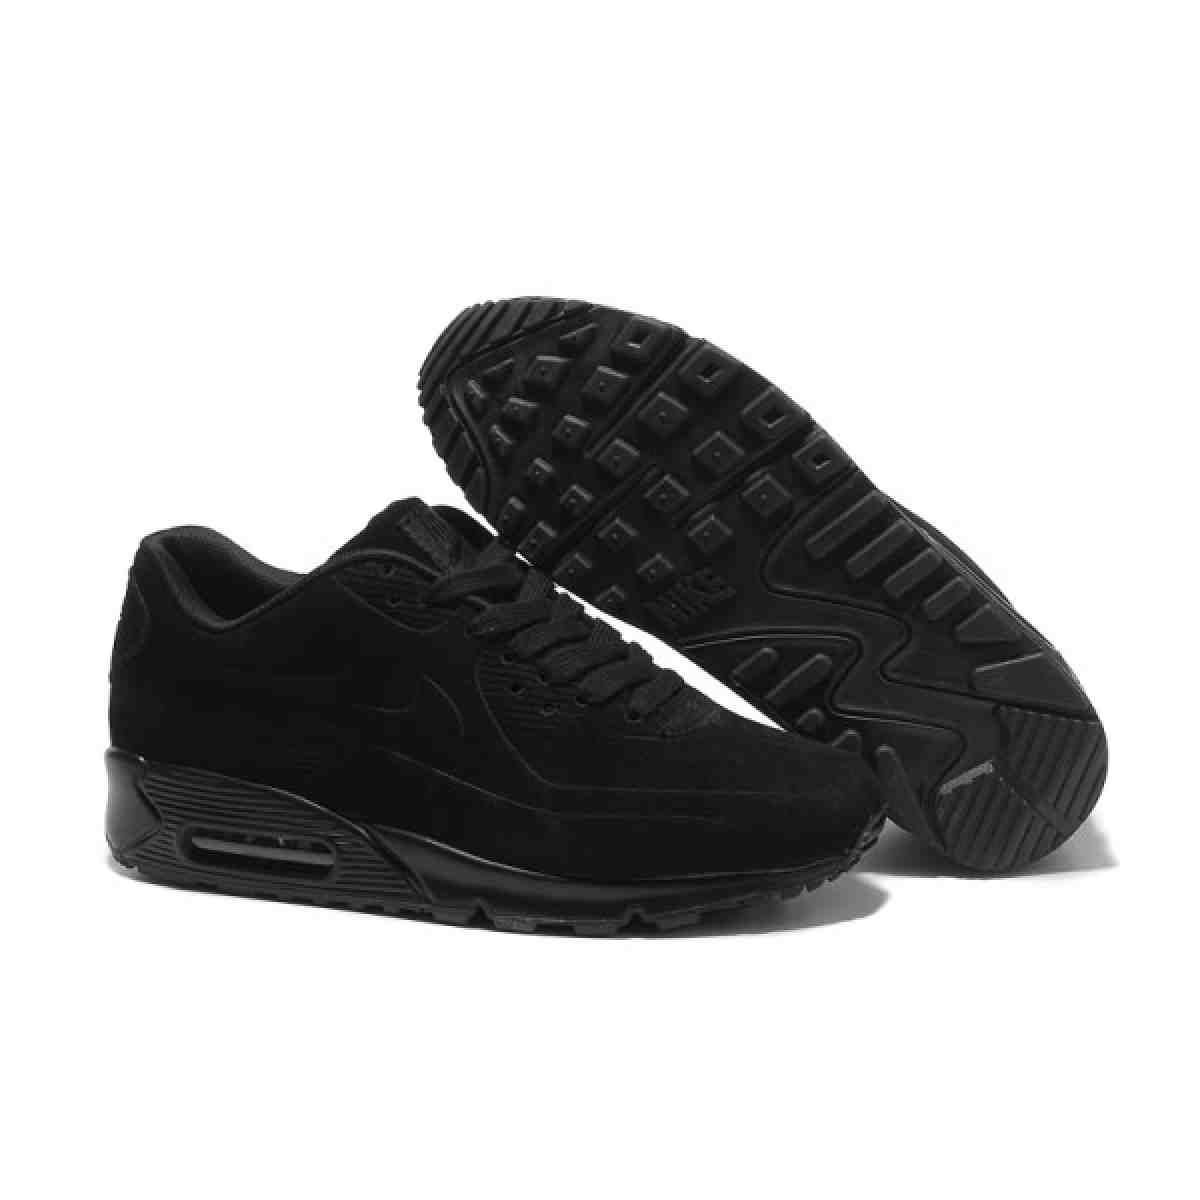 best service 54057 35649 Black Tennis Shoes for Girls | Better Girls Tennis Shoes | Nike air ...